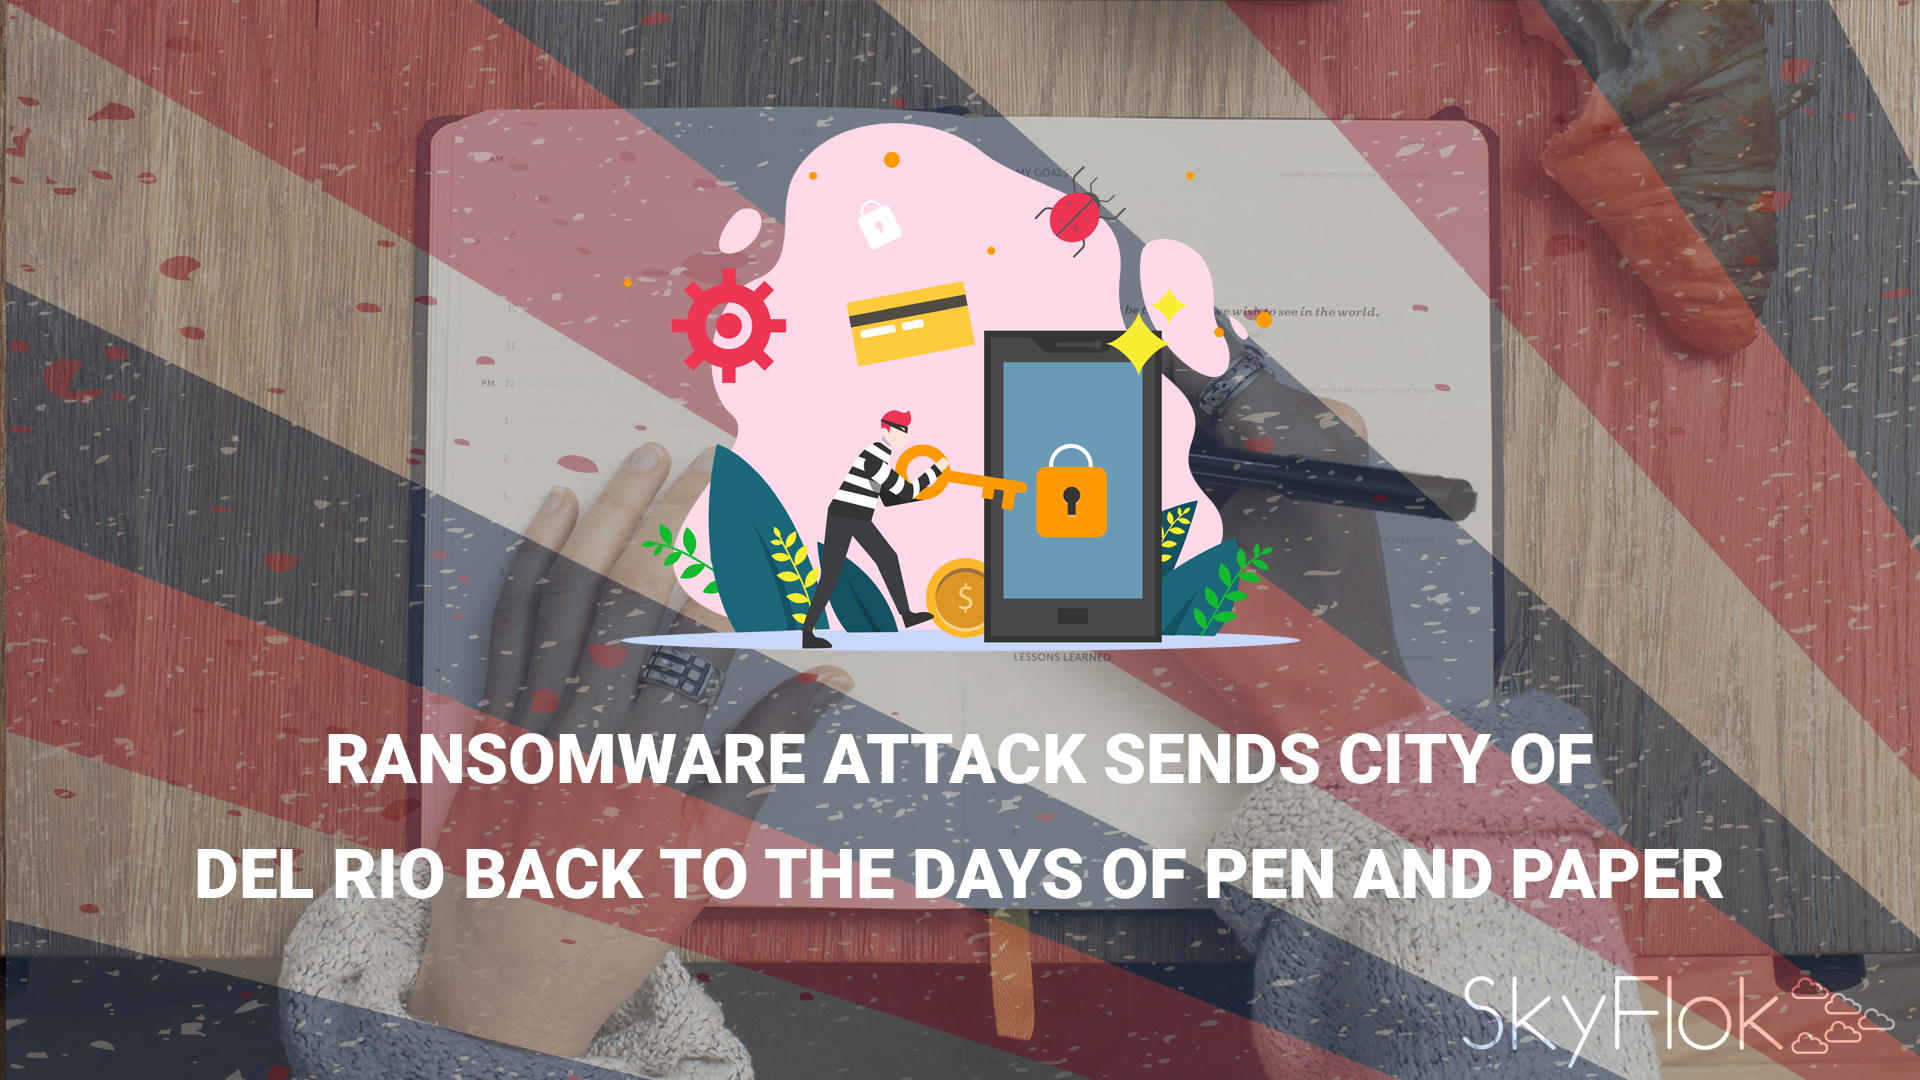 Ransomware attack sends City of Del Rio back to the days of pen and paper